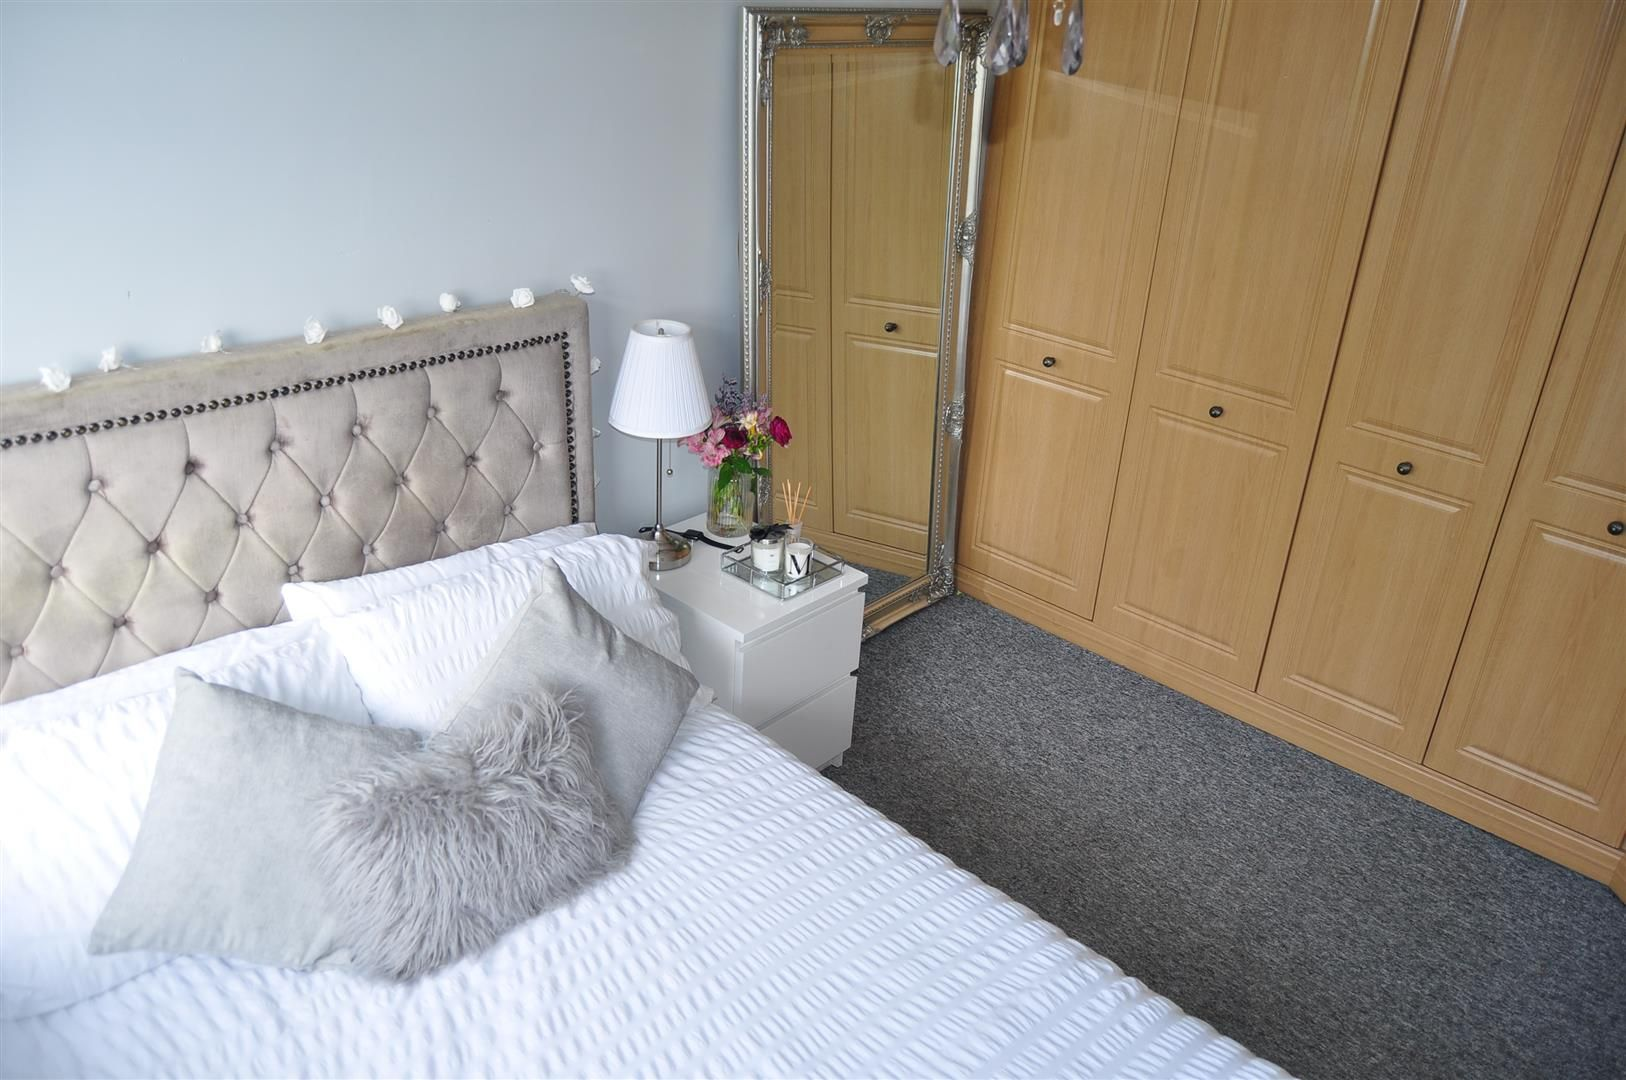 3 bed end-of-terrace for sale in Quinton 7